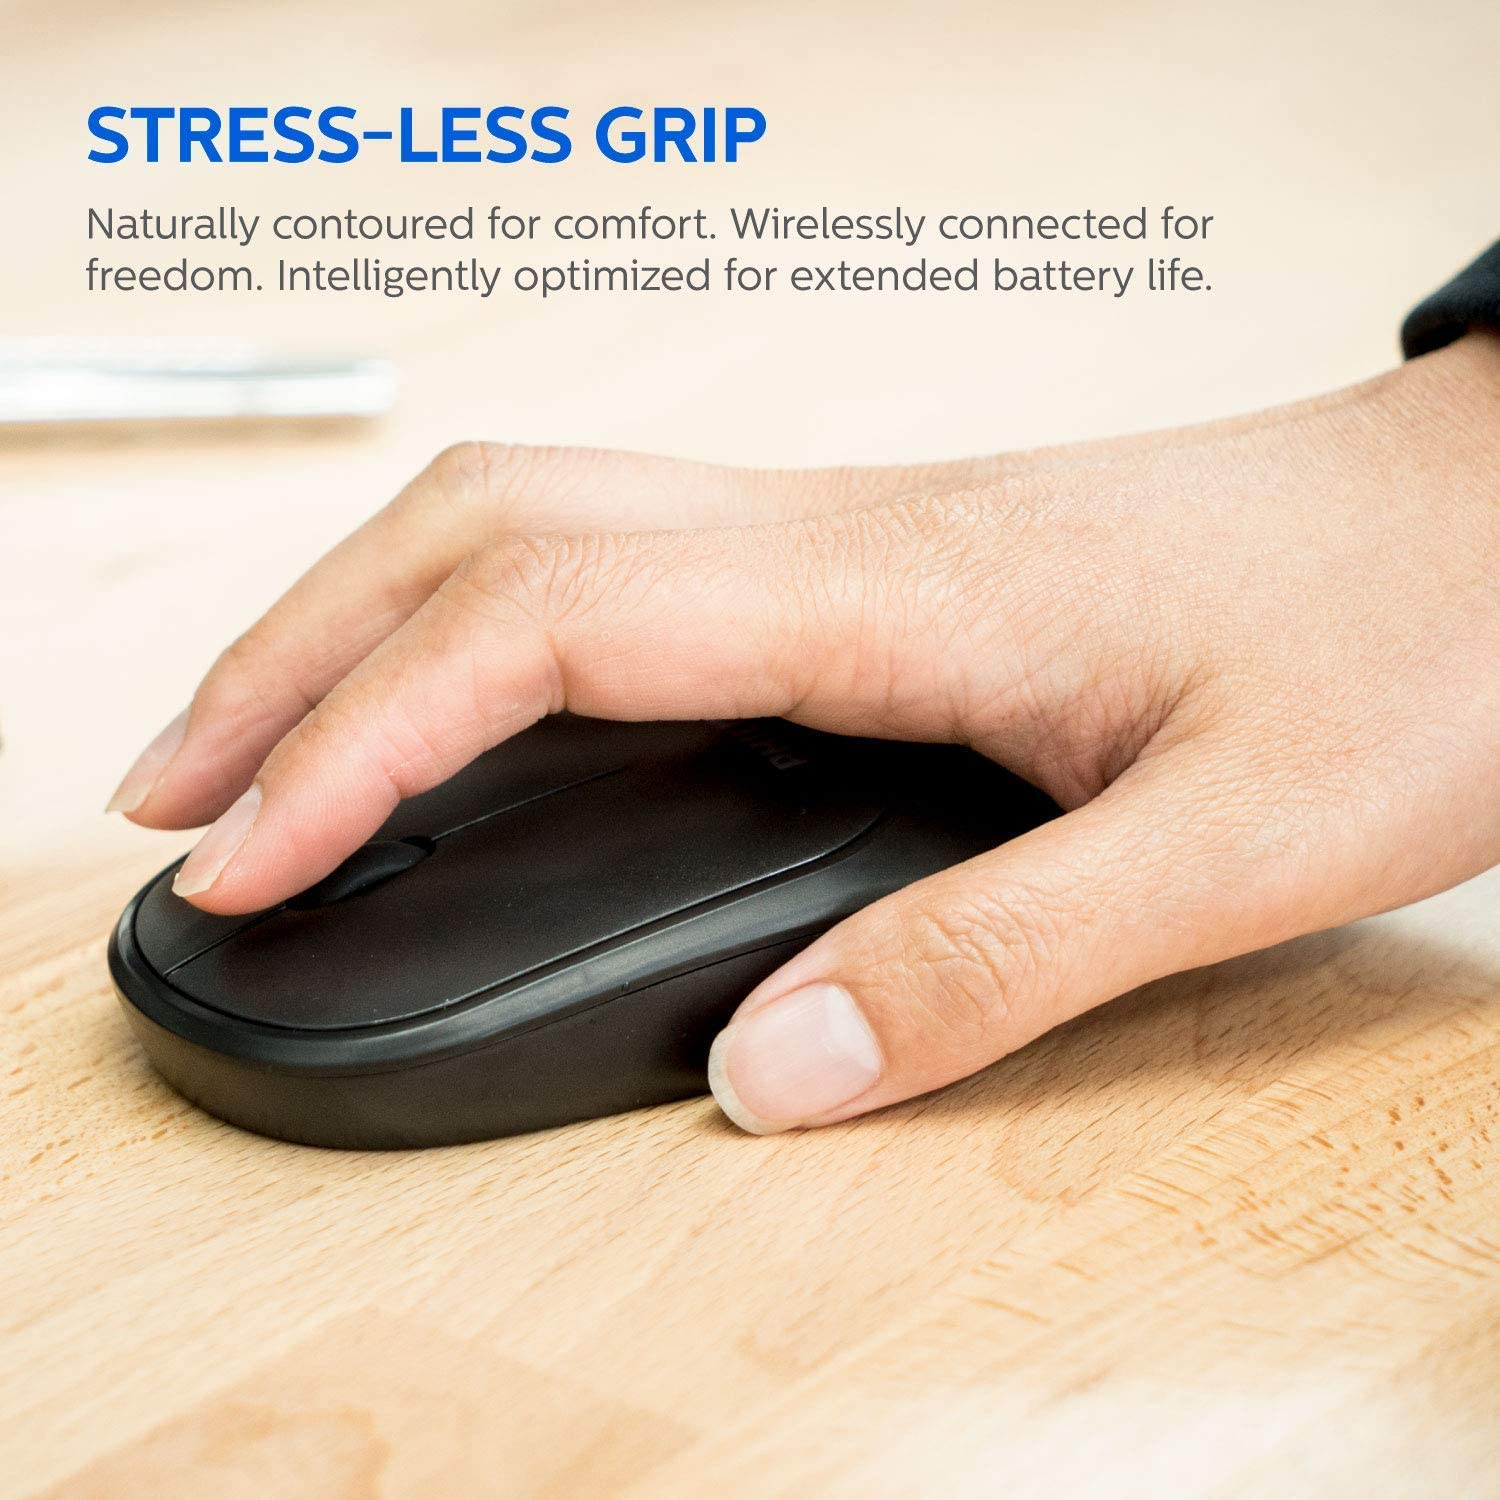 PC or Notebook Low-Profile Laptop | Plug and Play for Windows Adjustable DPI Mouse Full-Sized Keyboard Ambidextrous Philips SPT6324 Wireless Keyboard and Mouse Combo